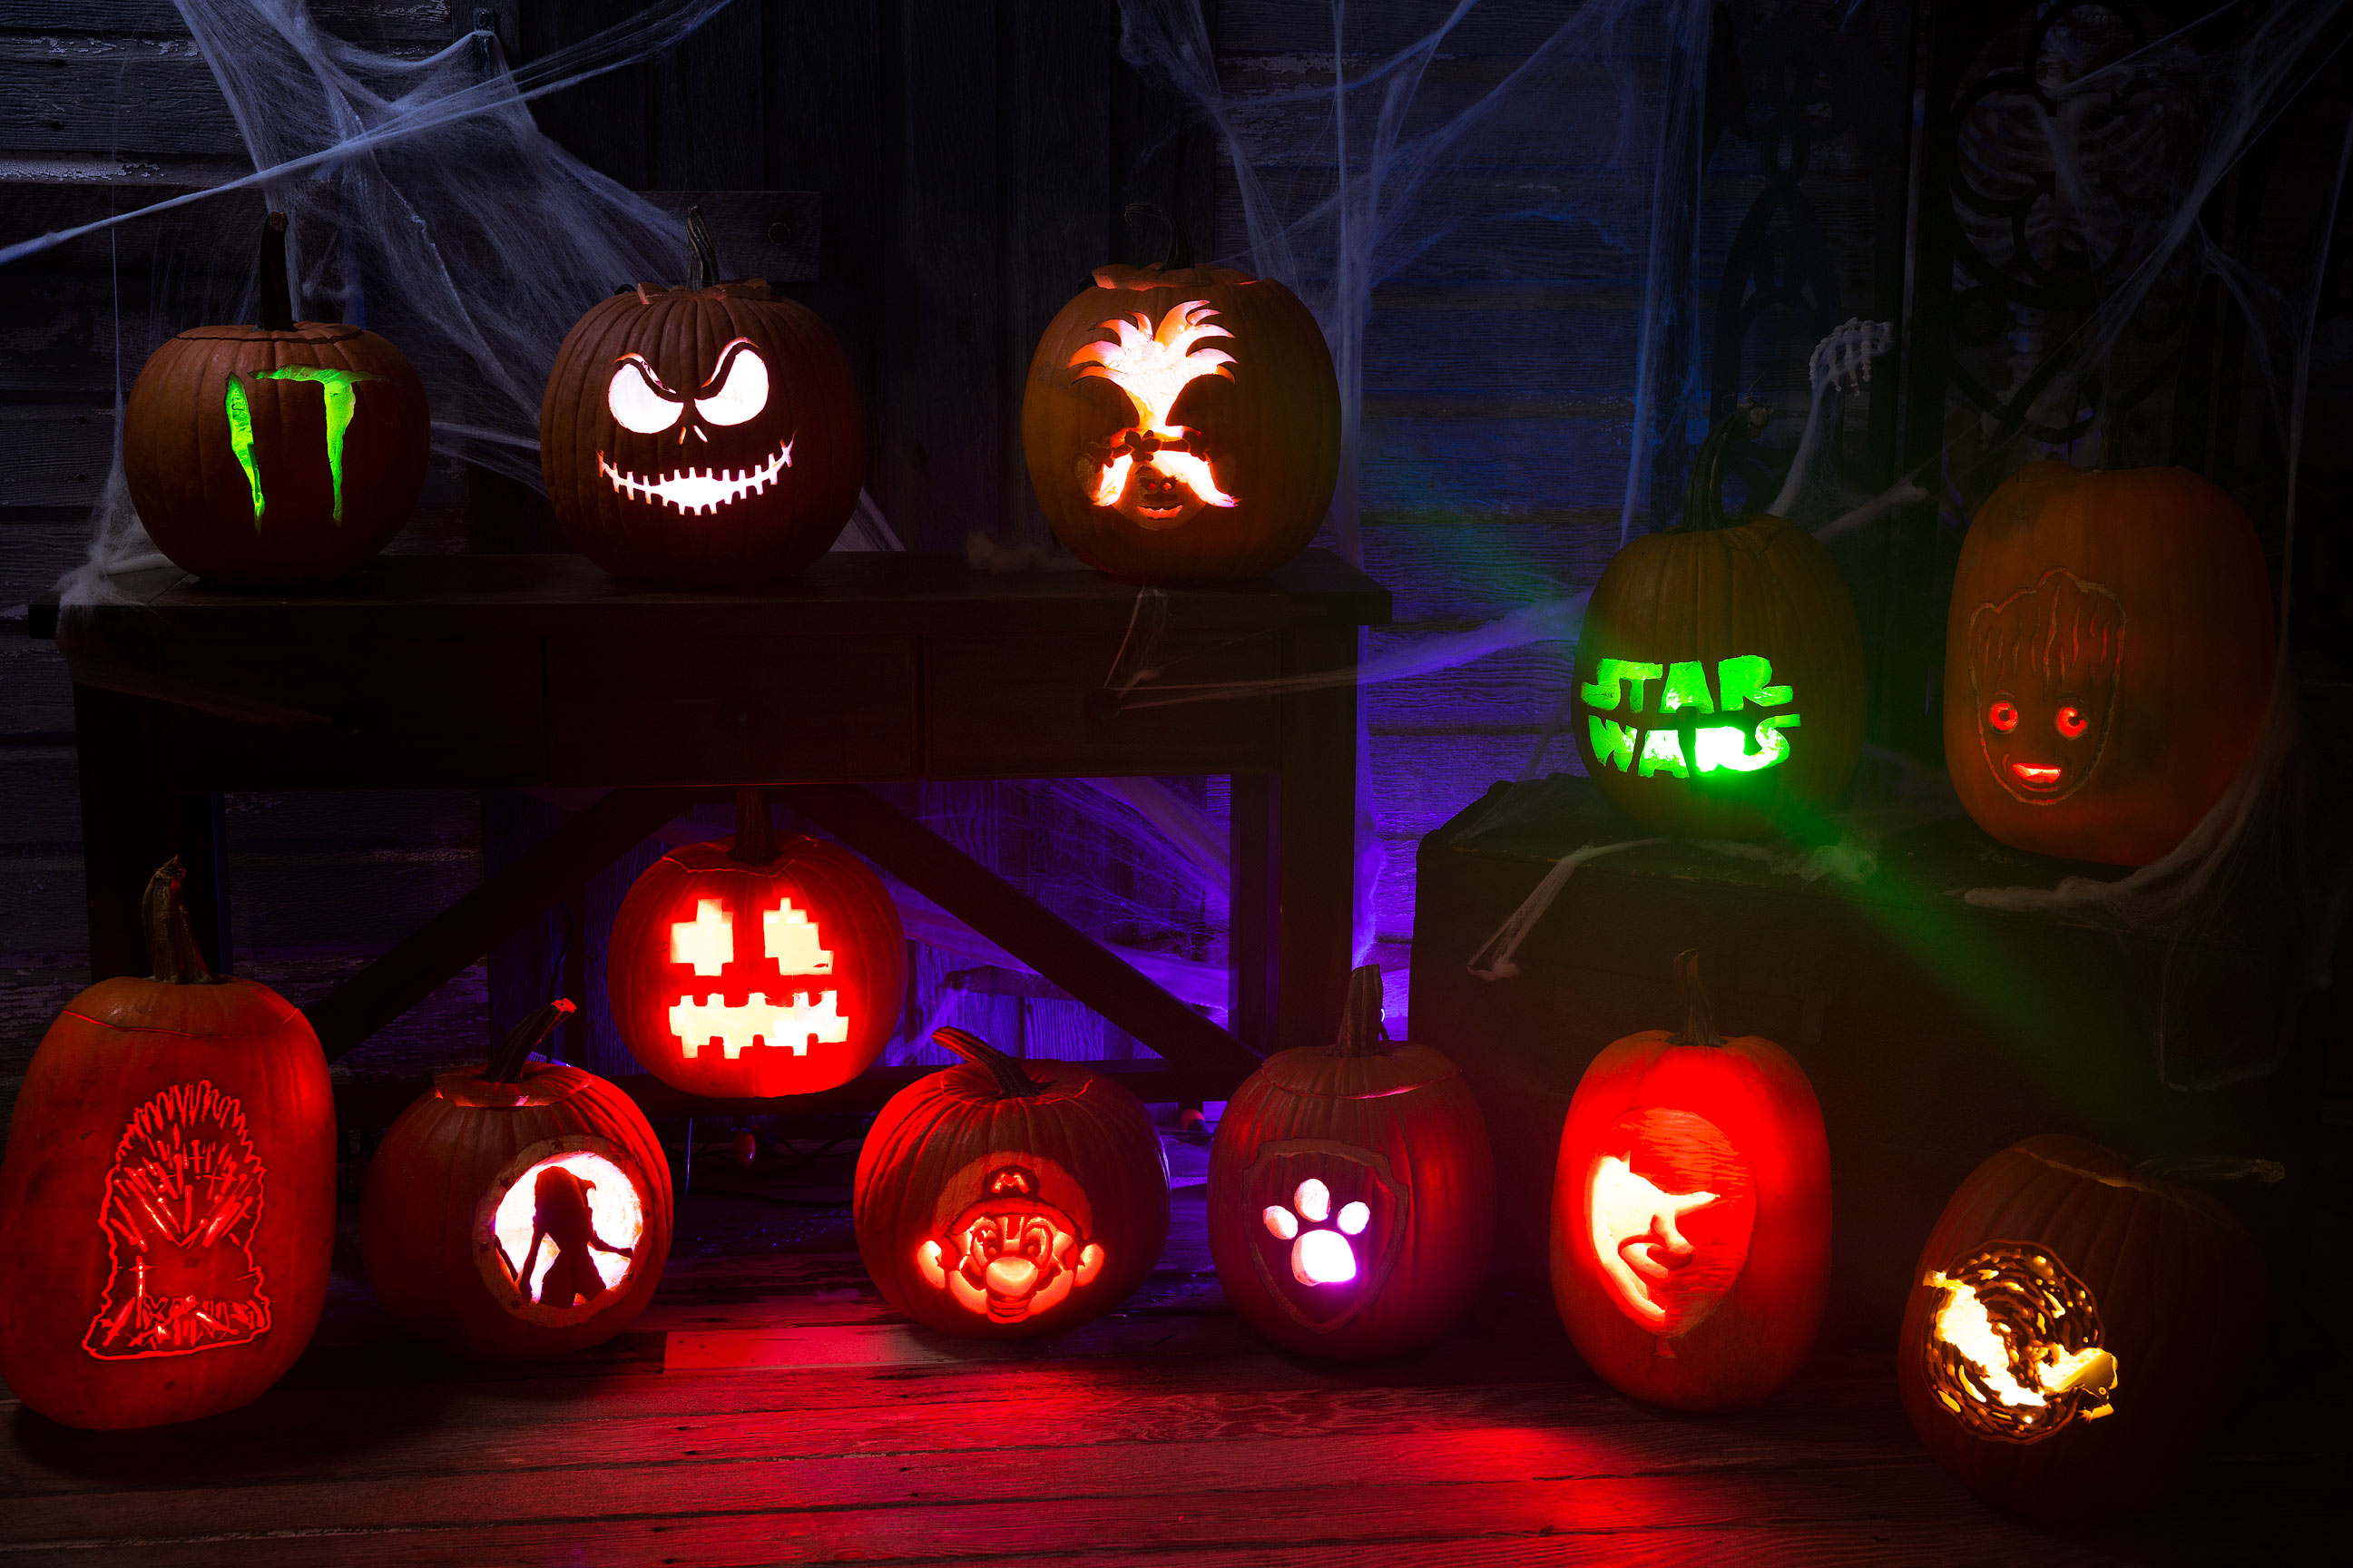 Pop Culture Pumpkin Stencils